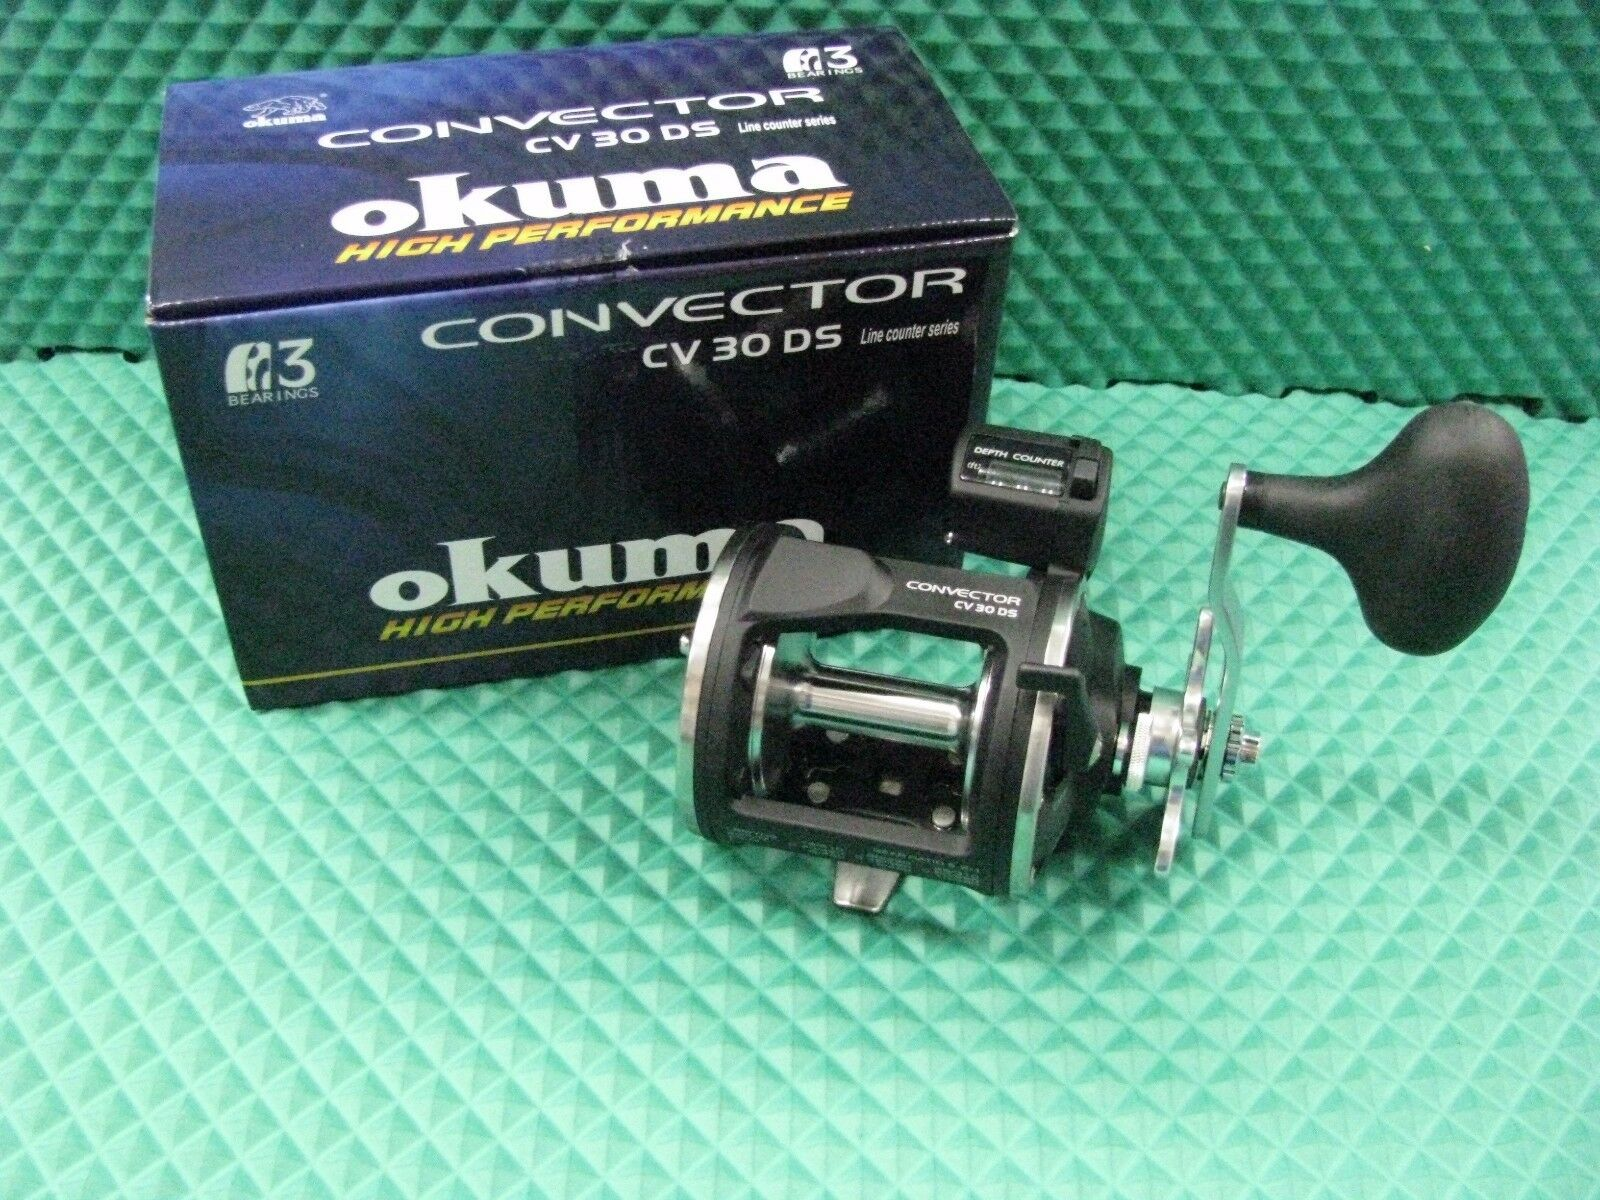 Okuma Convector CV 30DS HIGH SPEED 6.2  1  Line Counter Trolling Reel  large selection